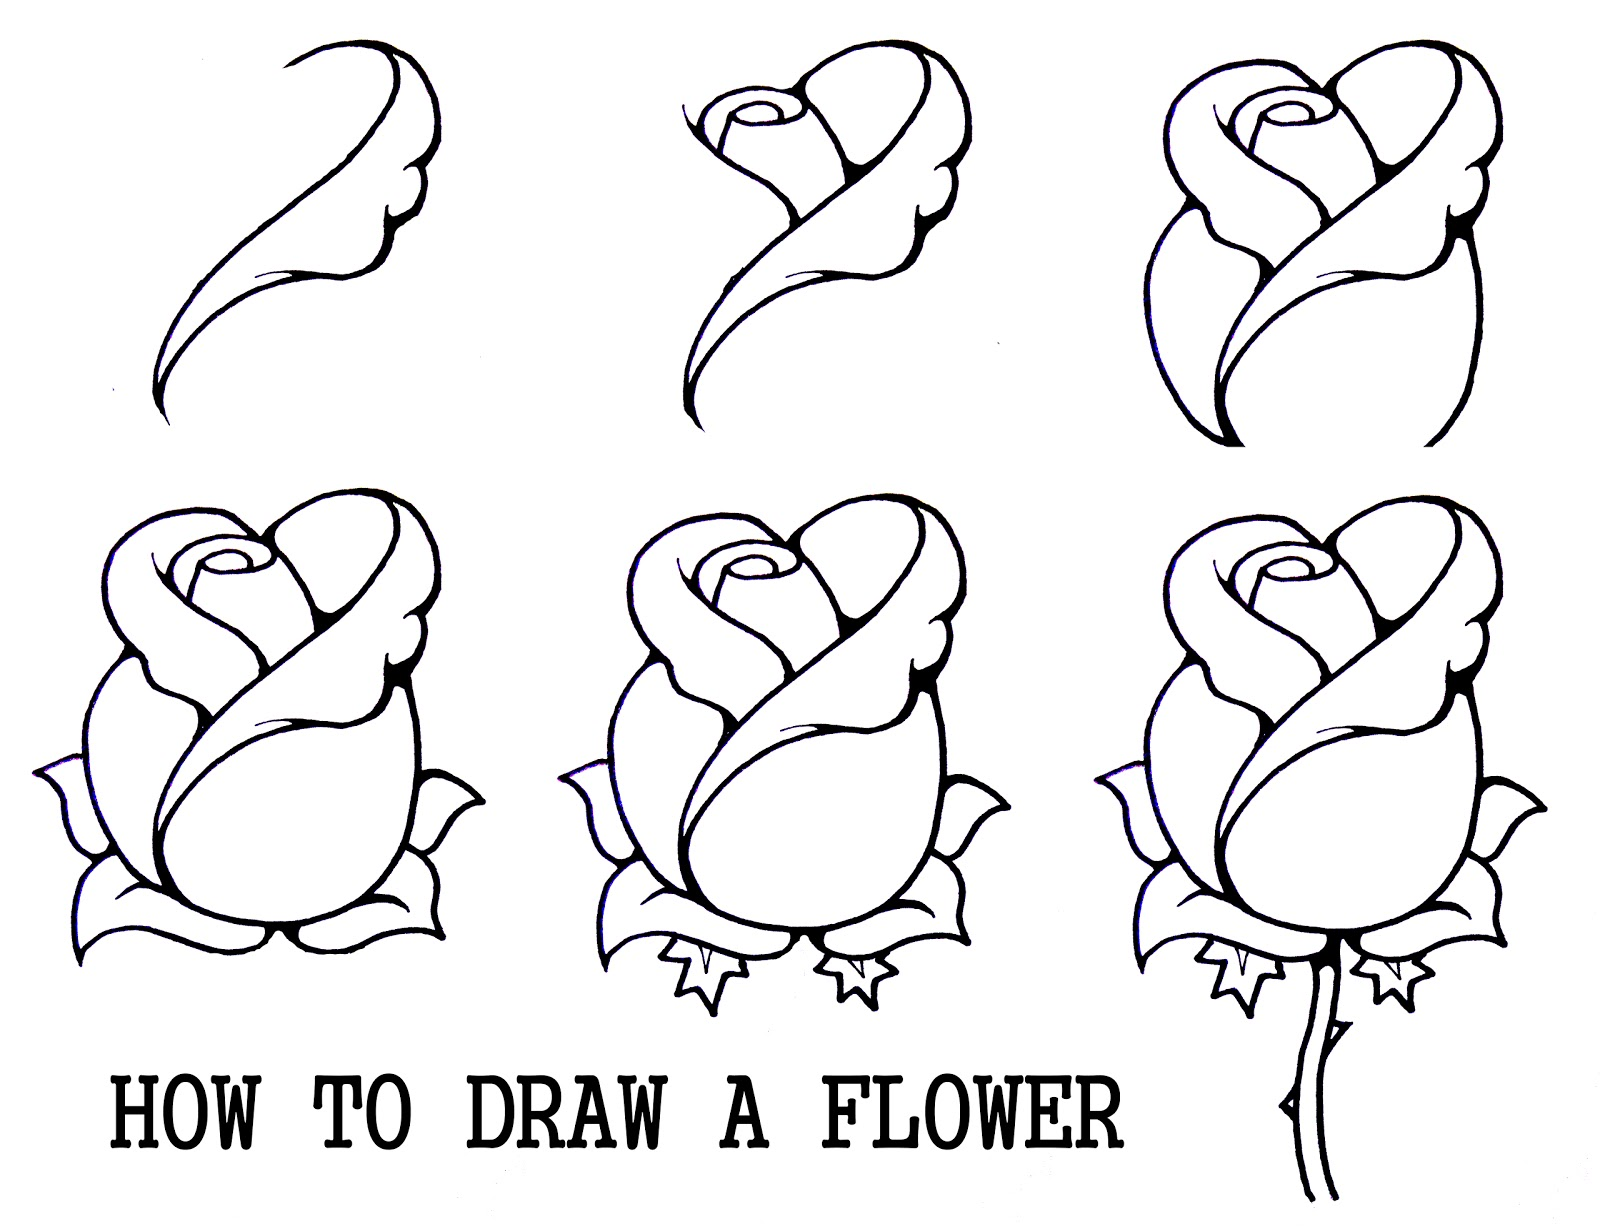 Daryl hobson artwork how to draw a flower step by step for Things to draw for beginners step by step